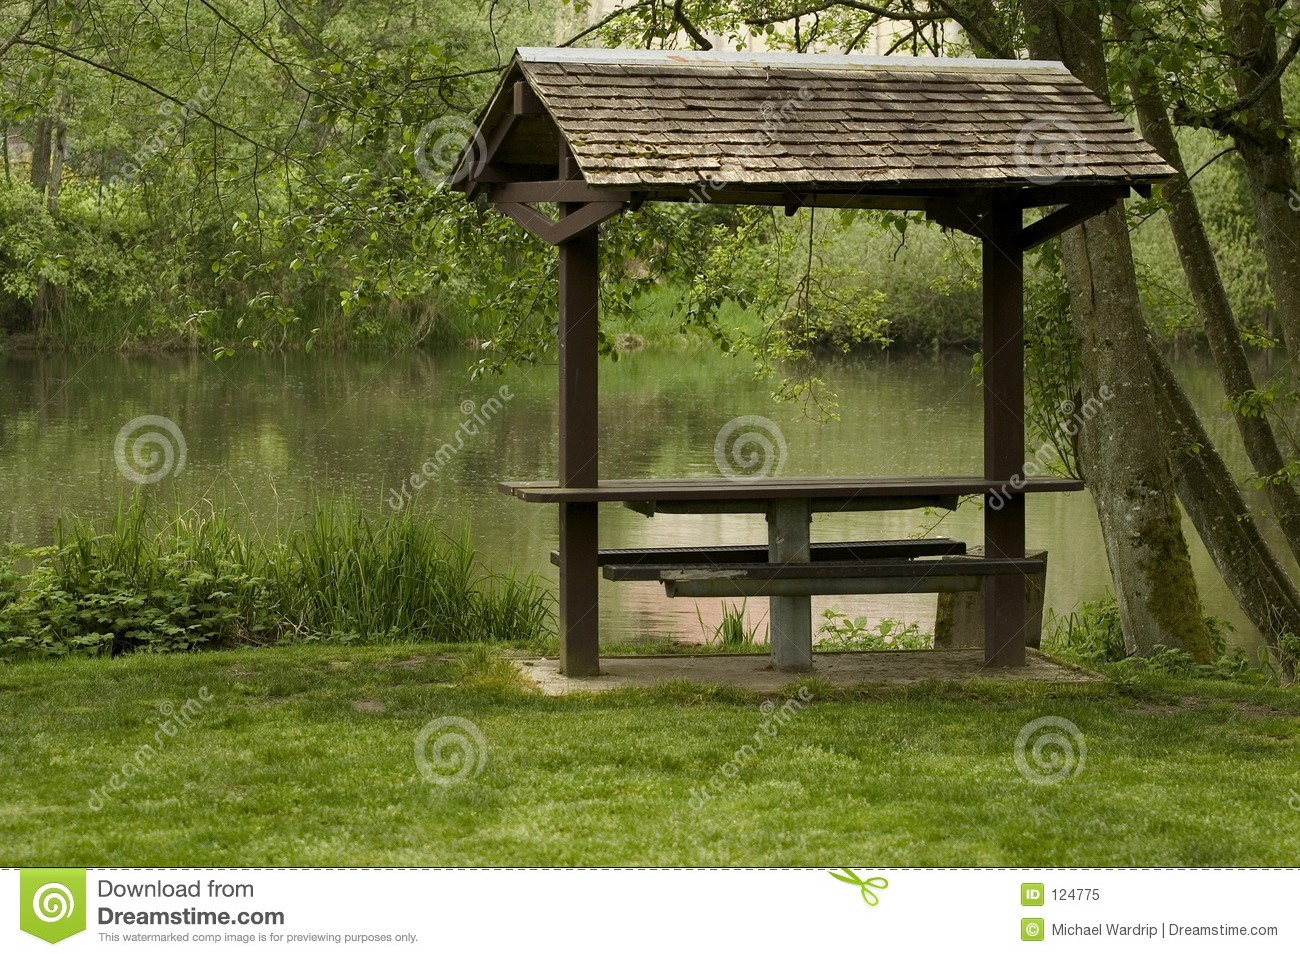 Covered Picnic Table Royalty Free Stock Photo - Image: 124775